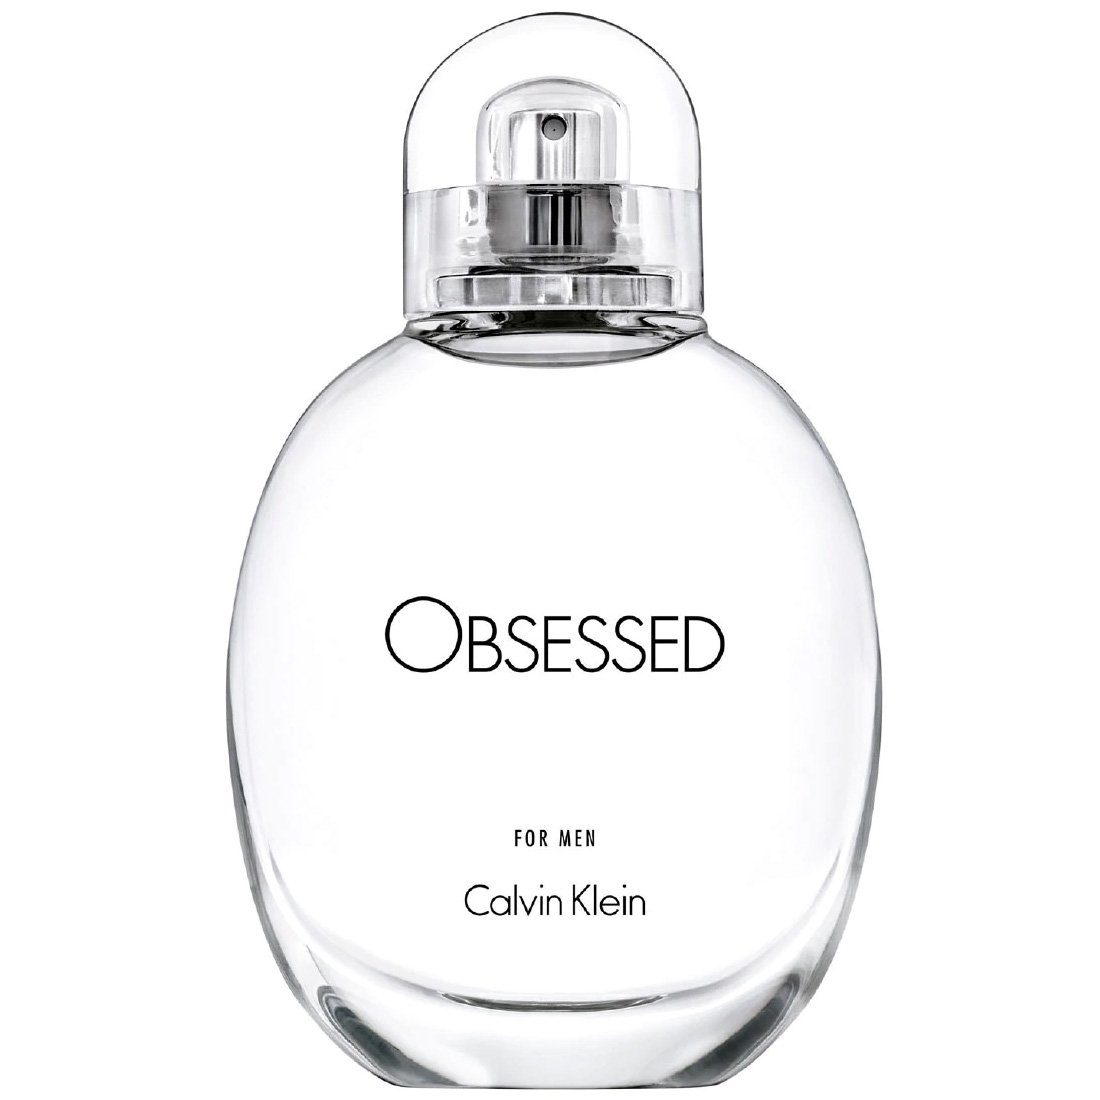 Calvin Klein - Obsessed for Men - Eau de Toilette